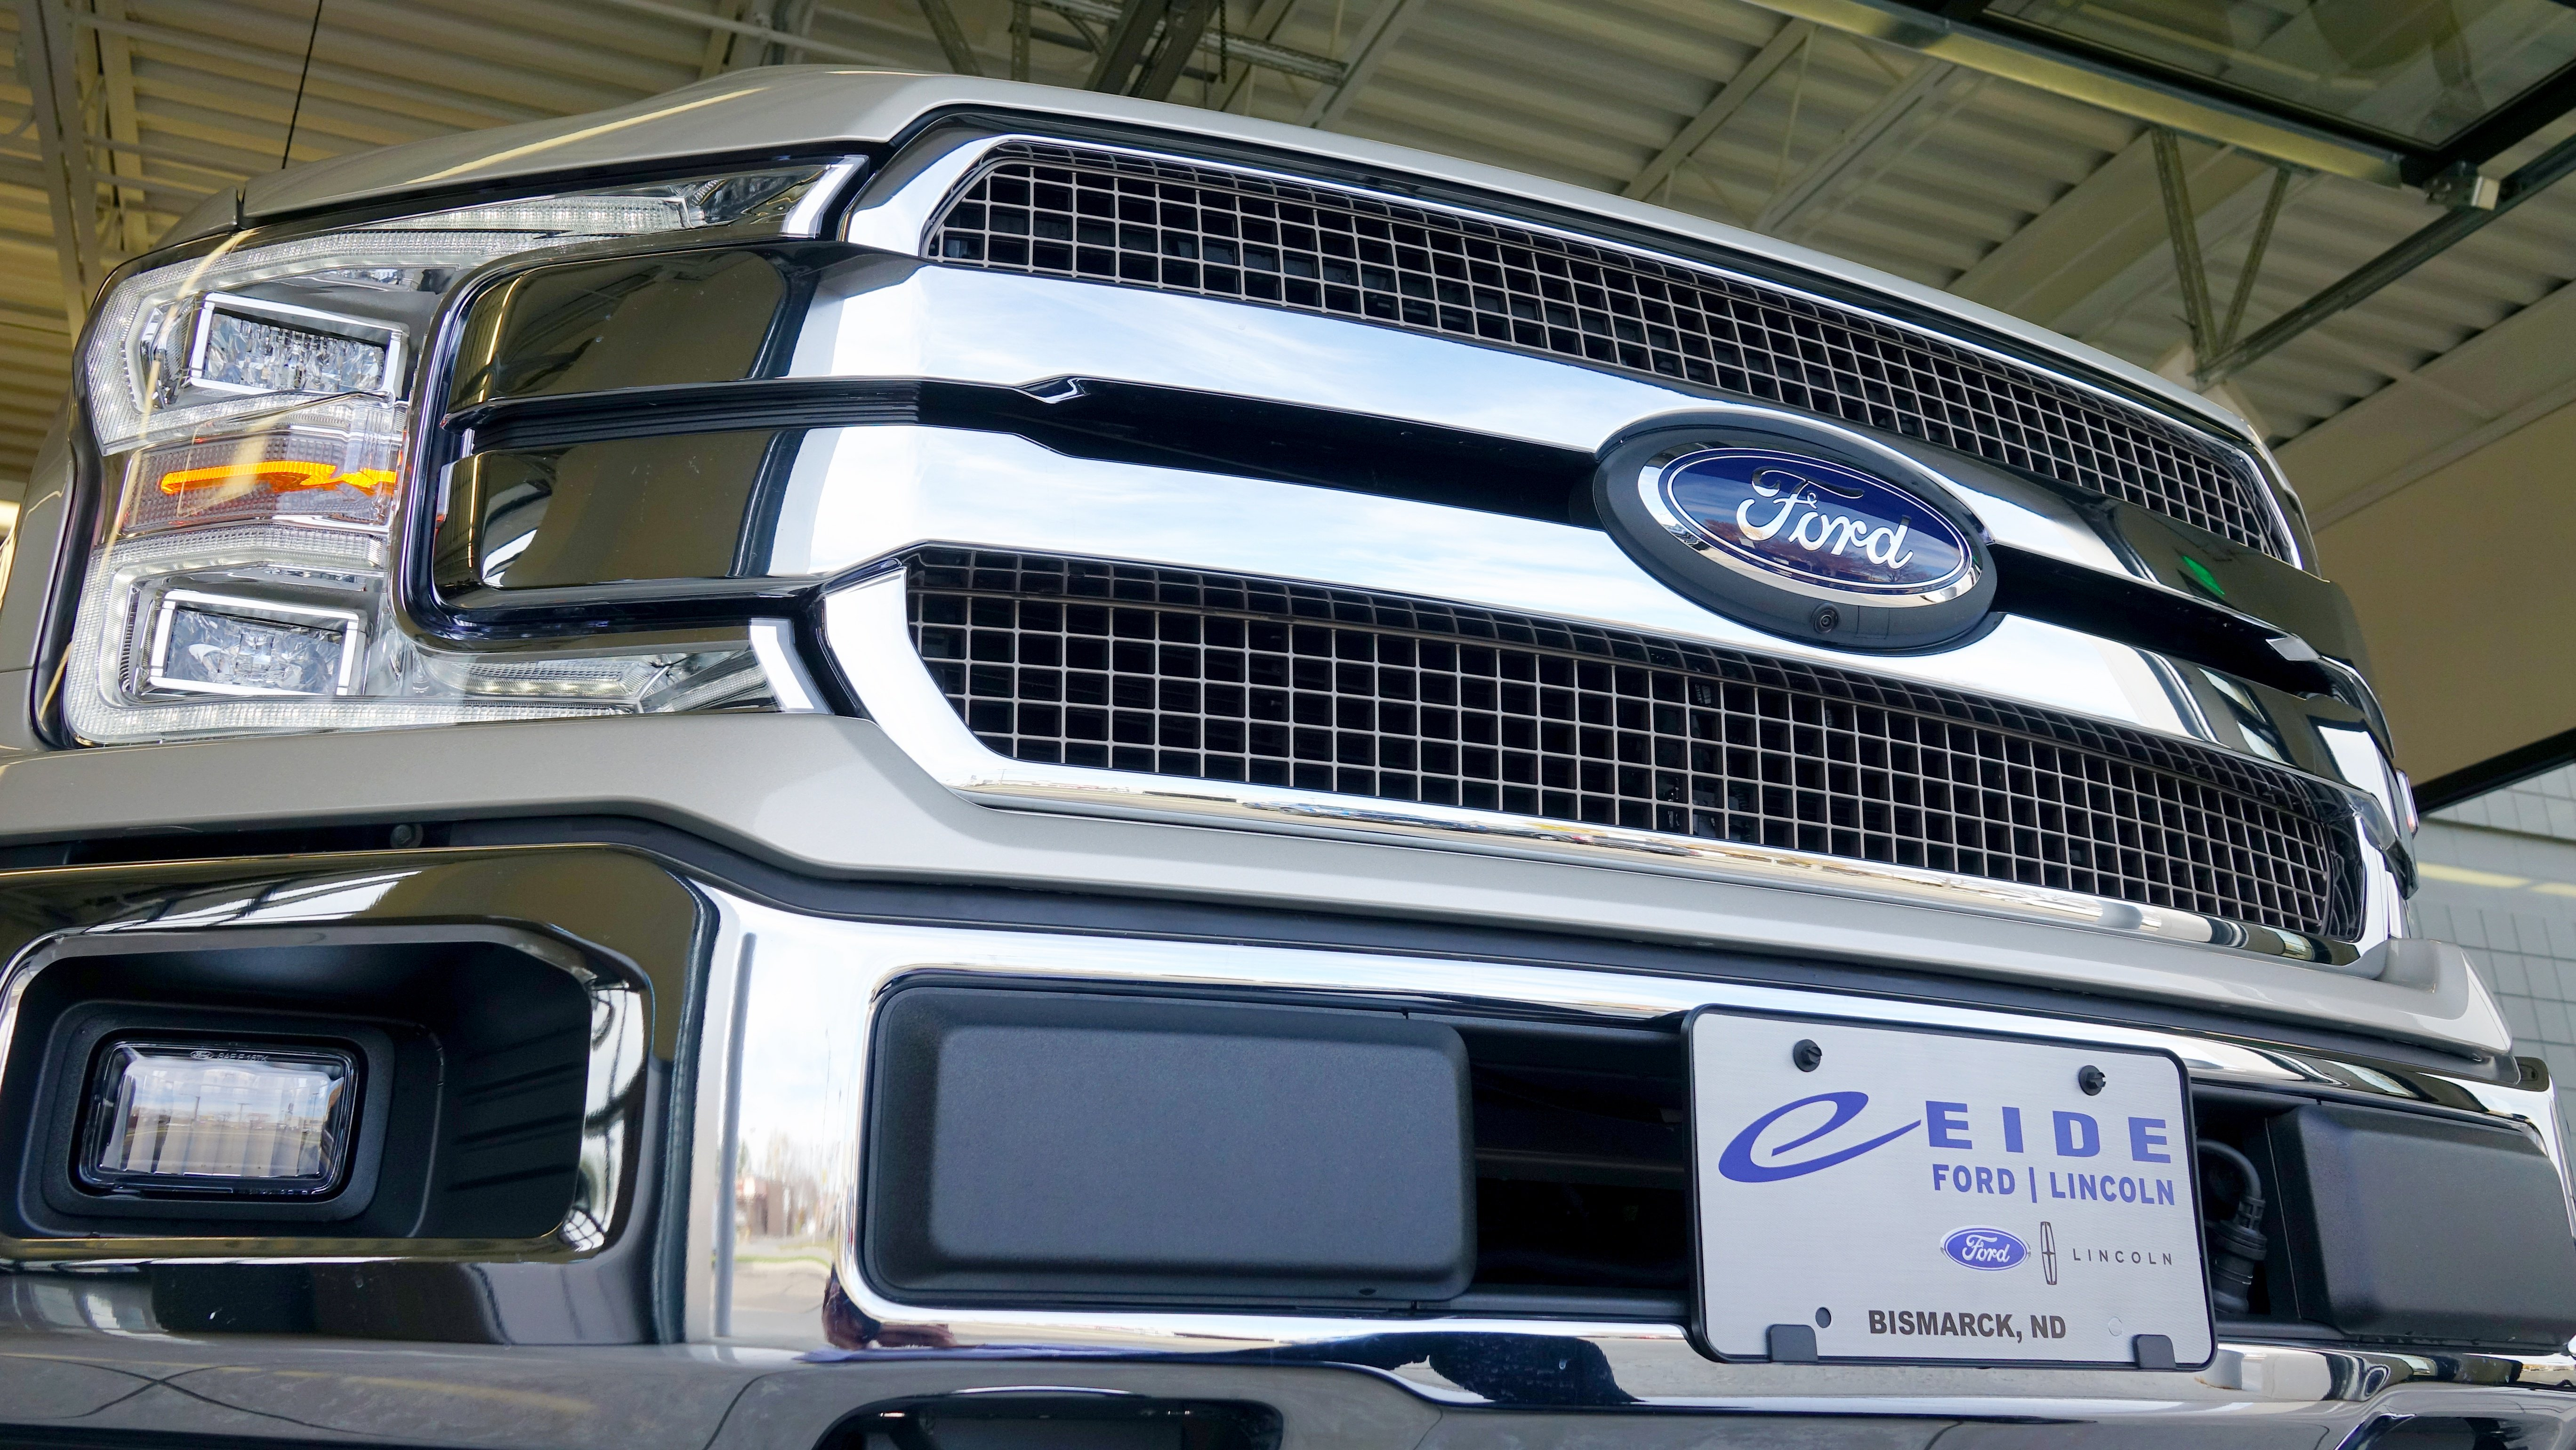 2018 F-150 Front Grille in Bismarck